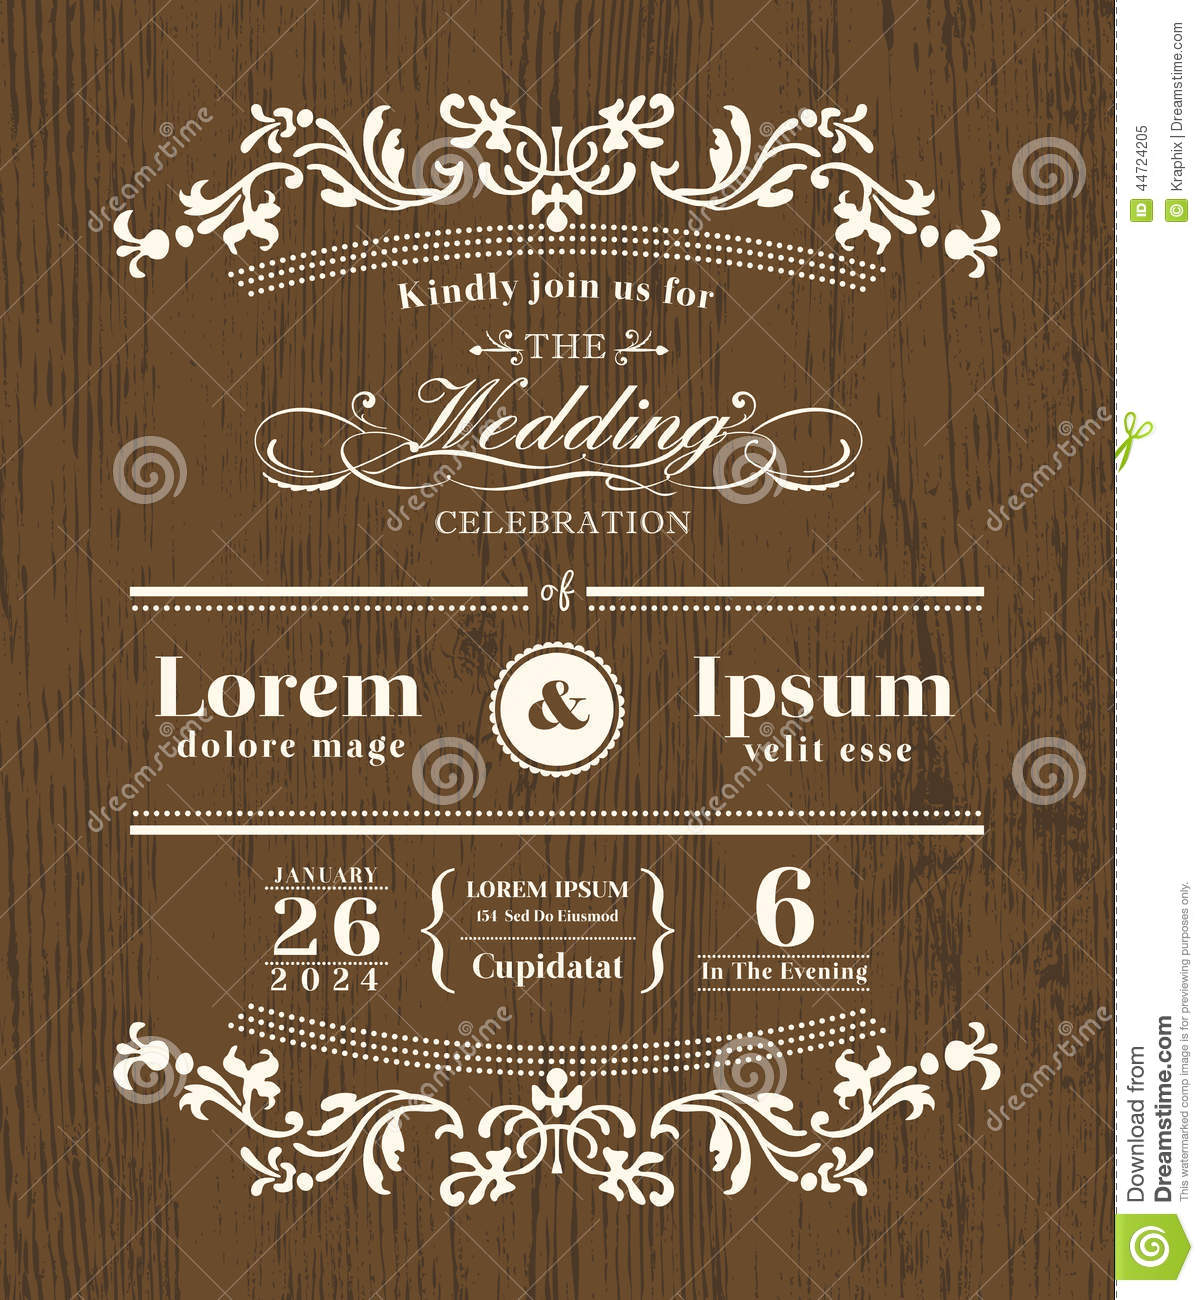 Wedding Boarding Pass Invitations is awesome invitations layout